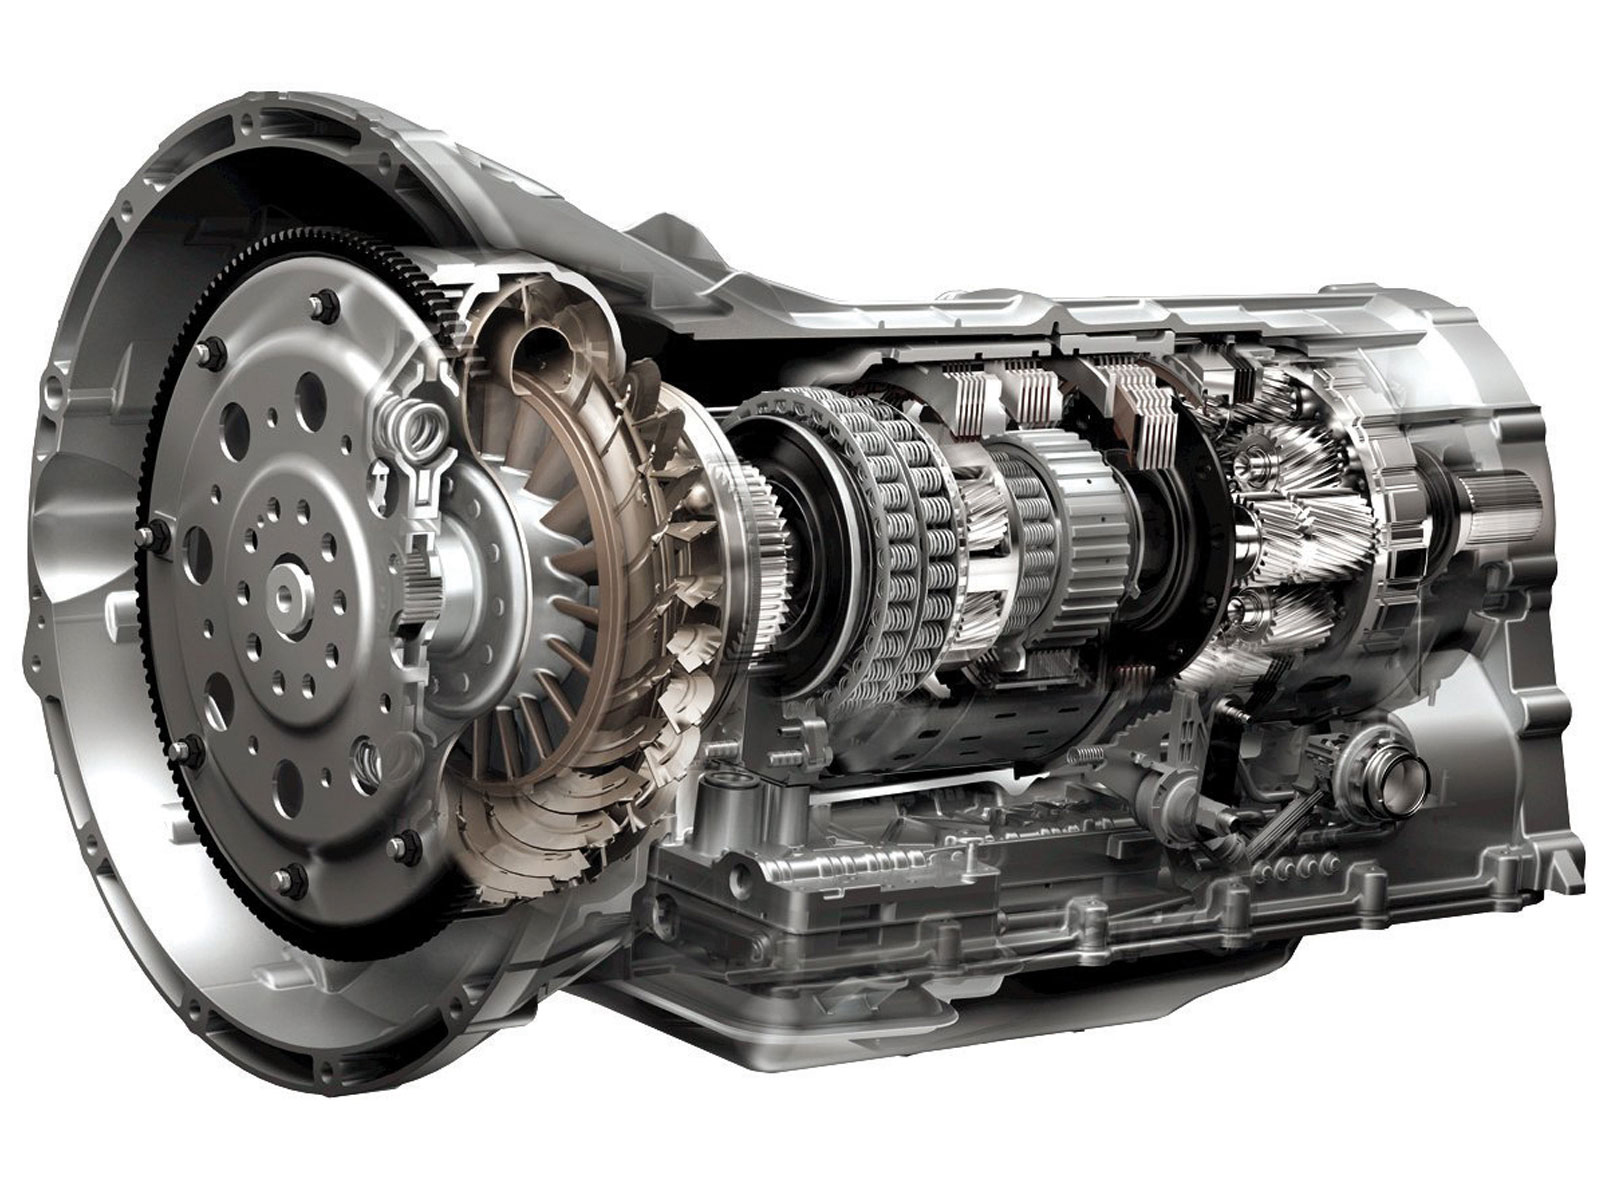 Transmission Rebuild, Replacement & Service